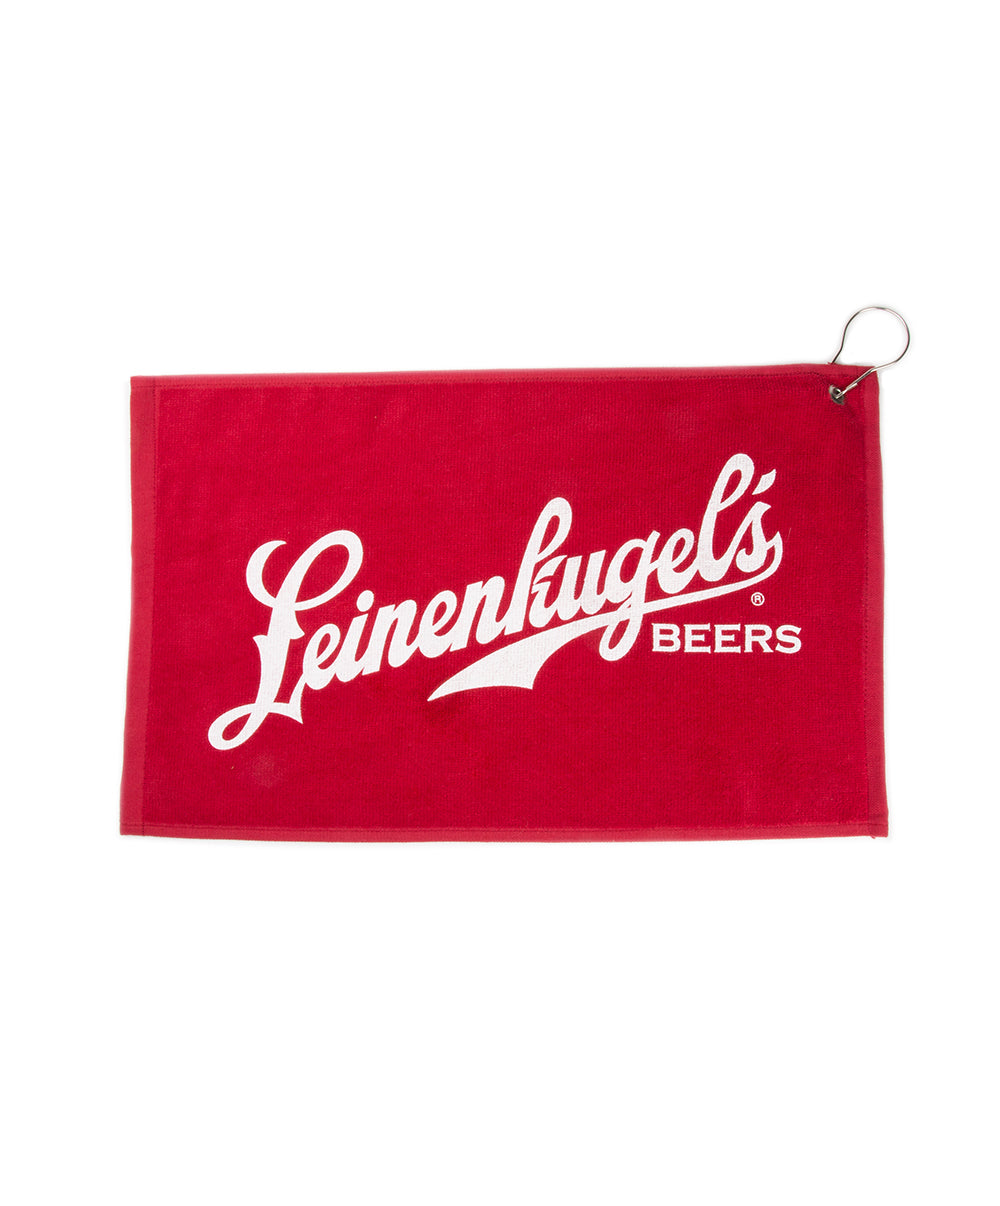 RED SCRIPT GOLF TOWEL